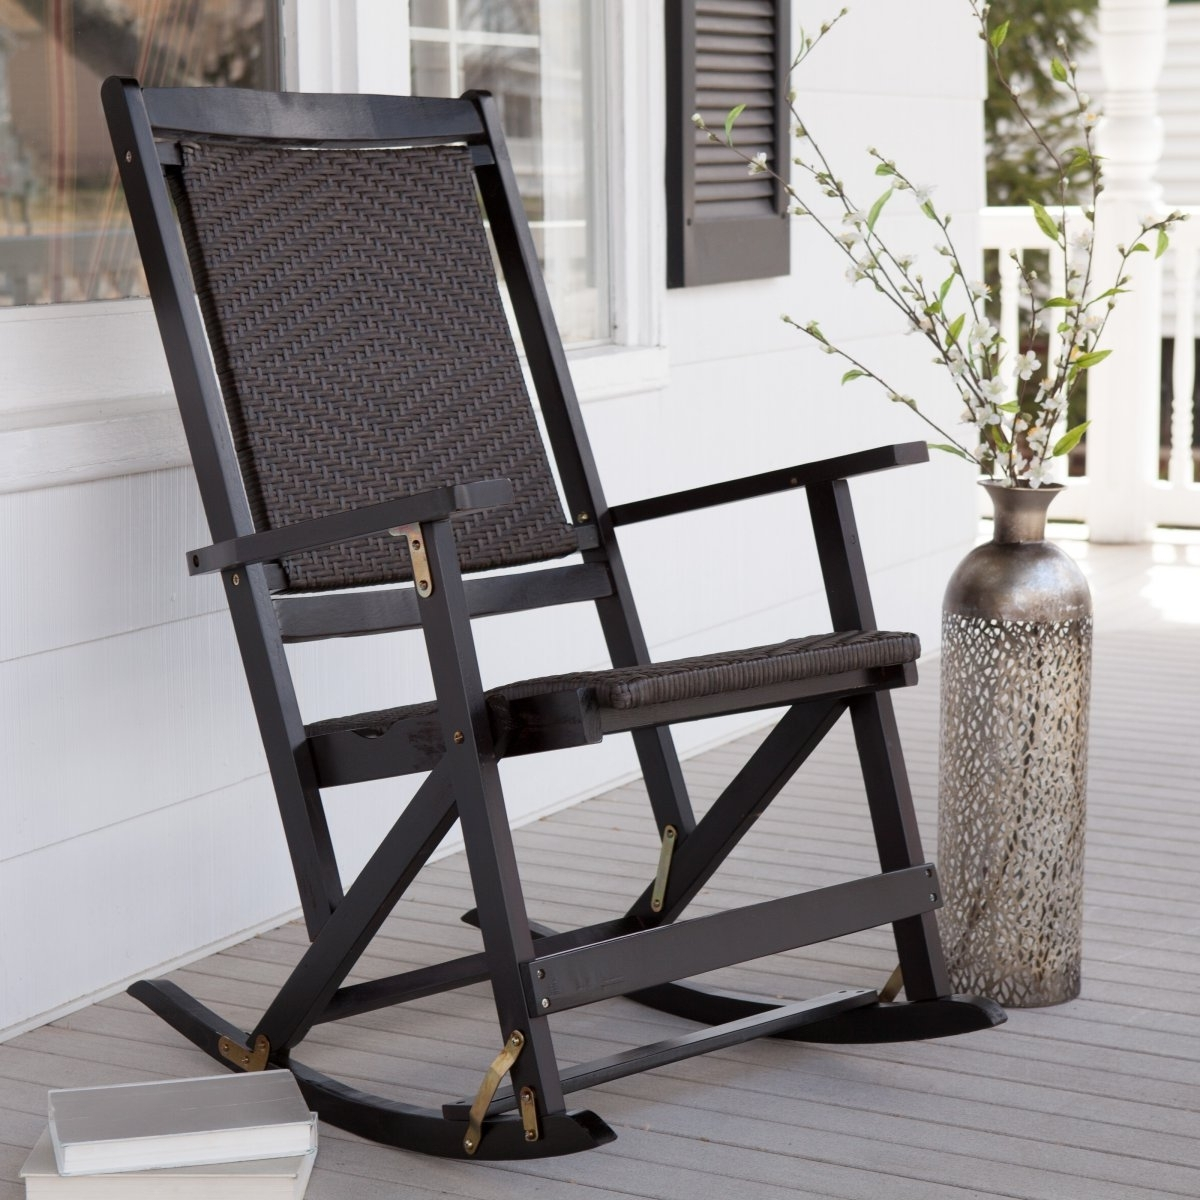 Black Patio Rocking Chairs Intended For Favorite Phenomenal Black Rocking Chair About Remodel Small Home Decoration (View 3 of 20)